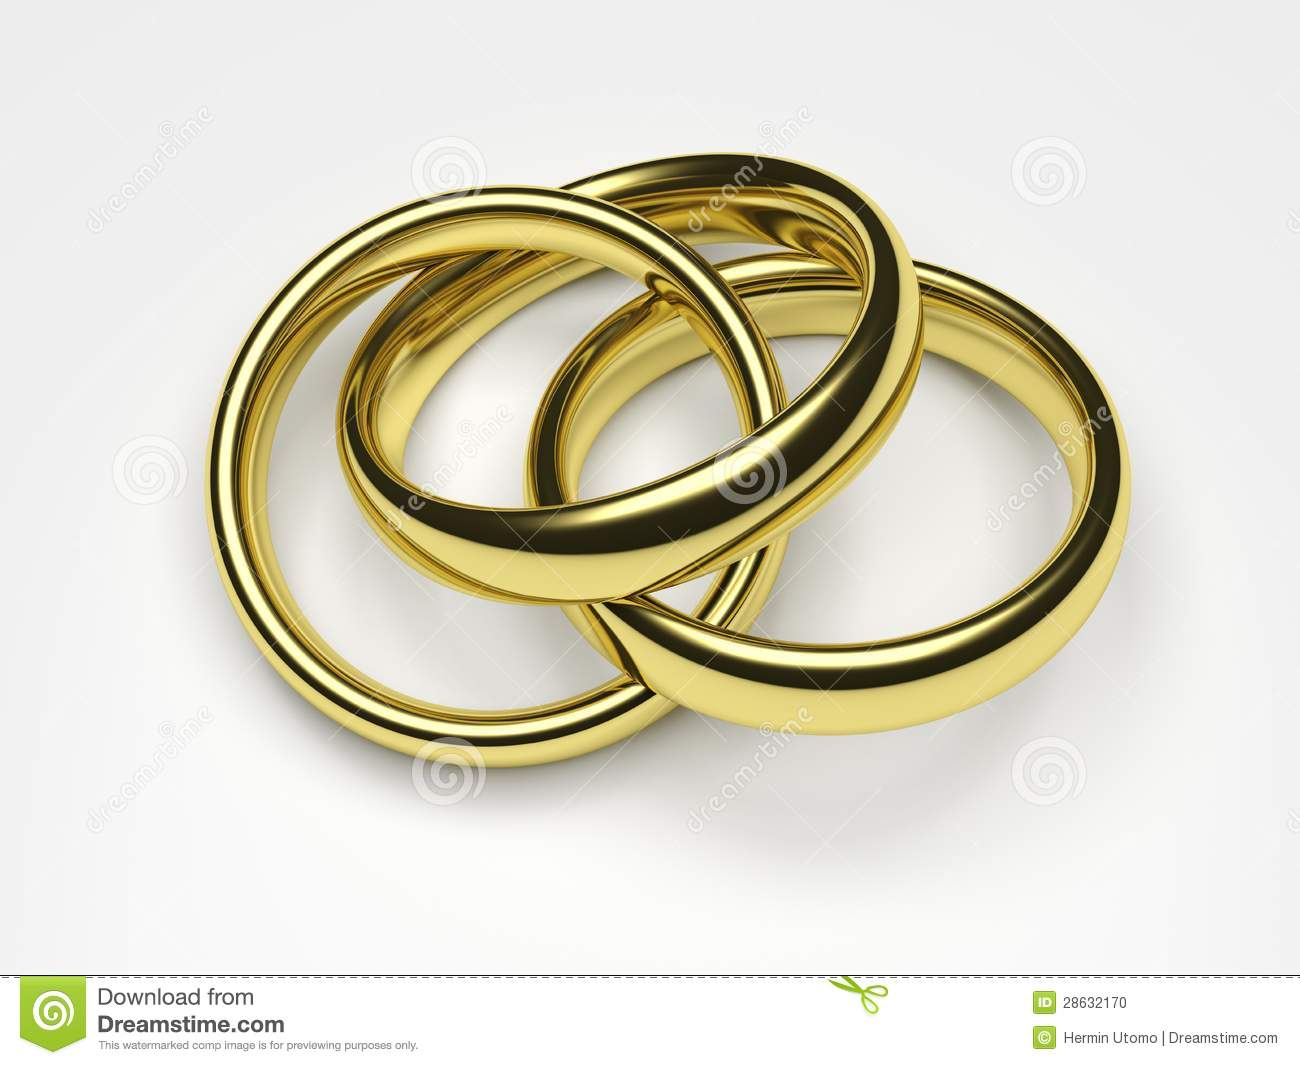 Download Polygamy stock illustration. Illustration of ring, jewelry - 28632170